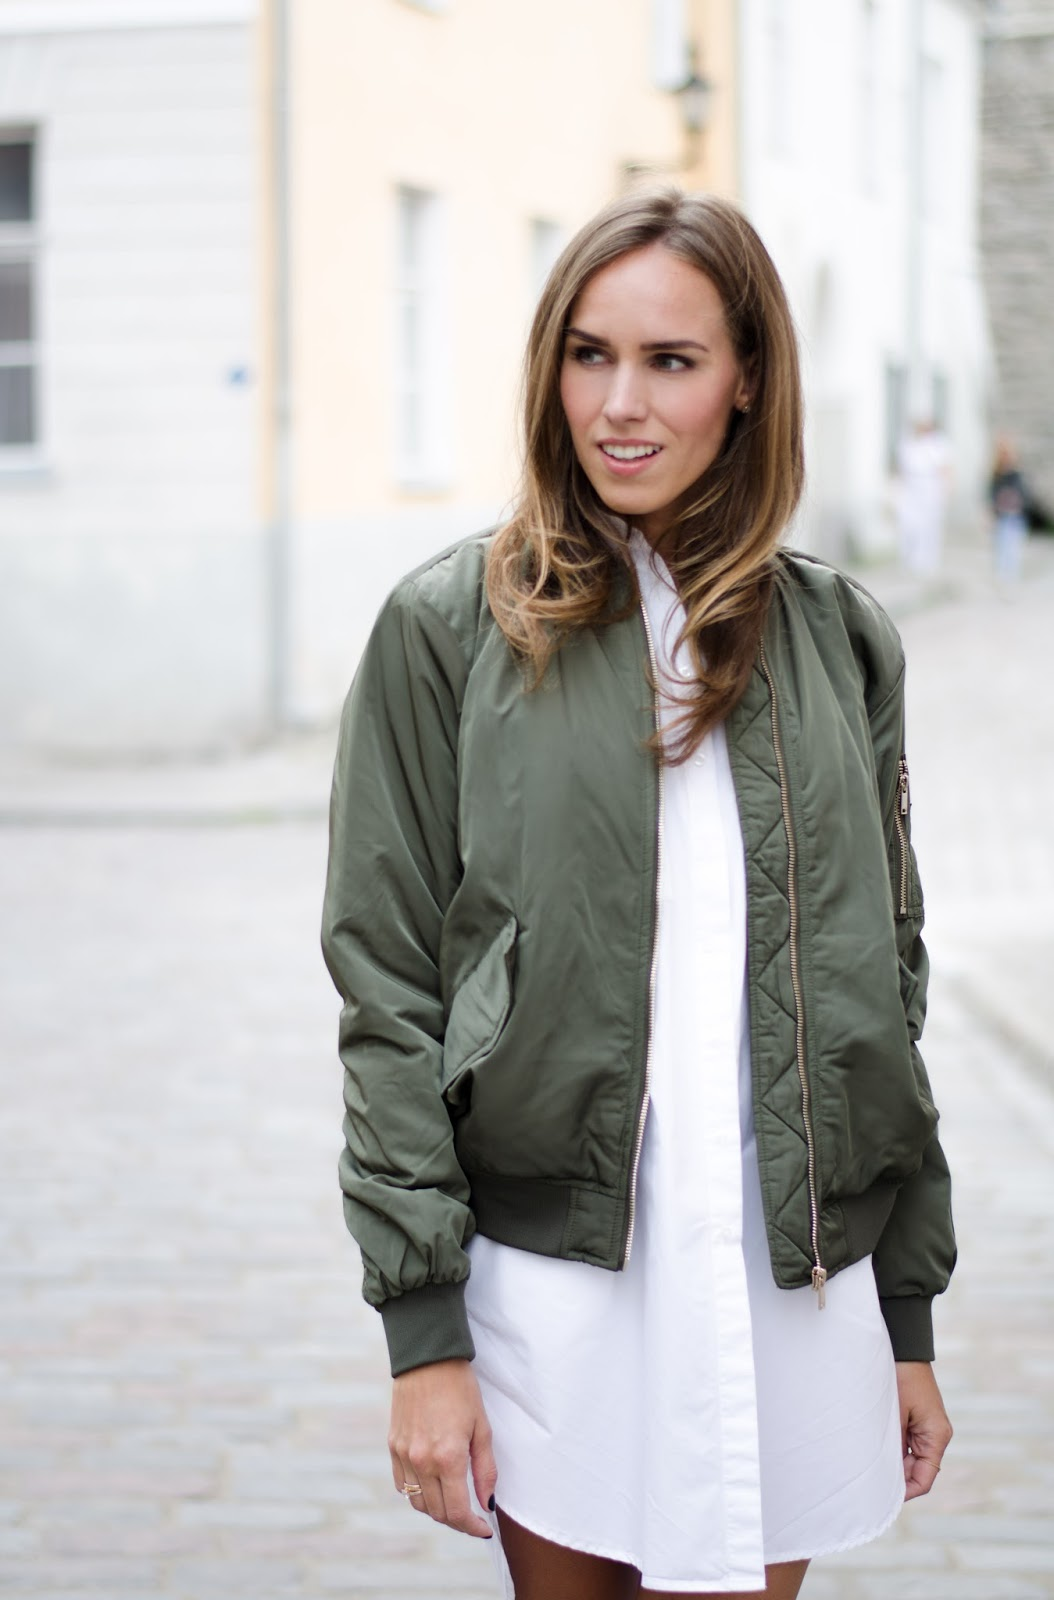 kristjaana mere green bomber jacket white shirt dress outfit